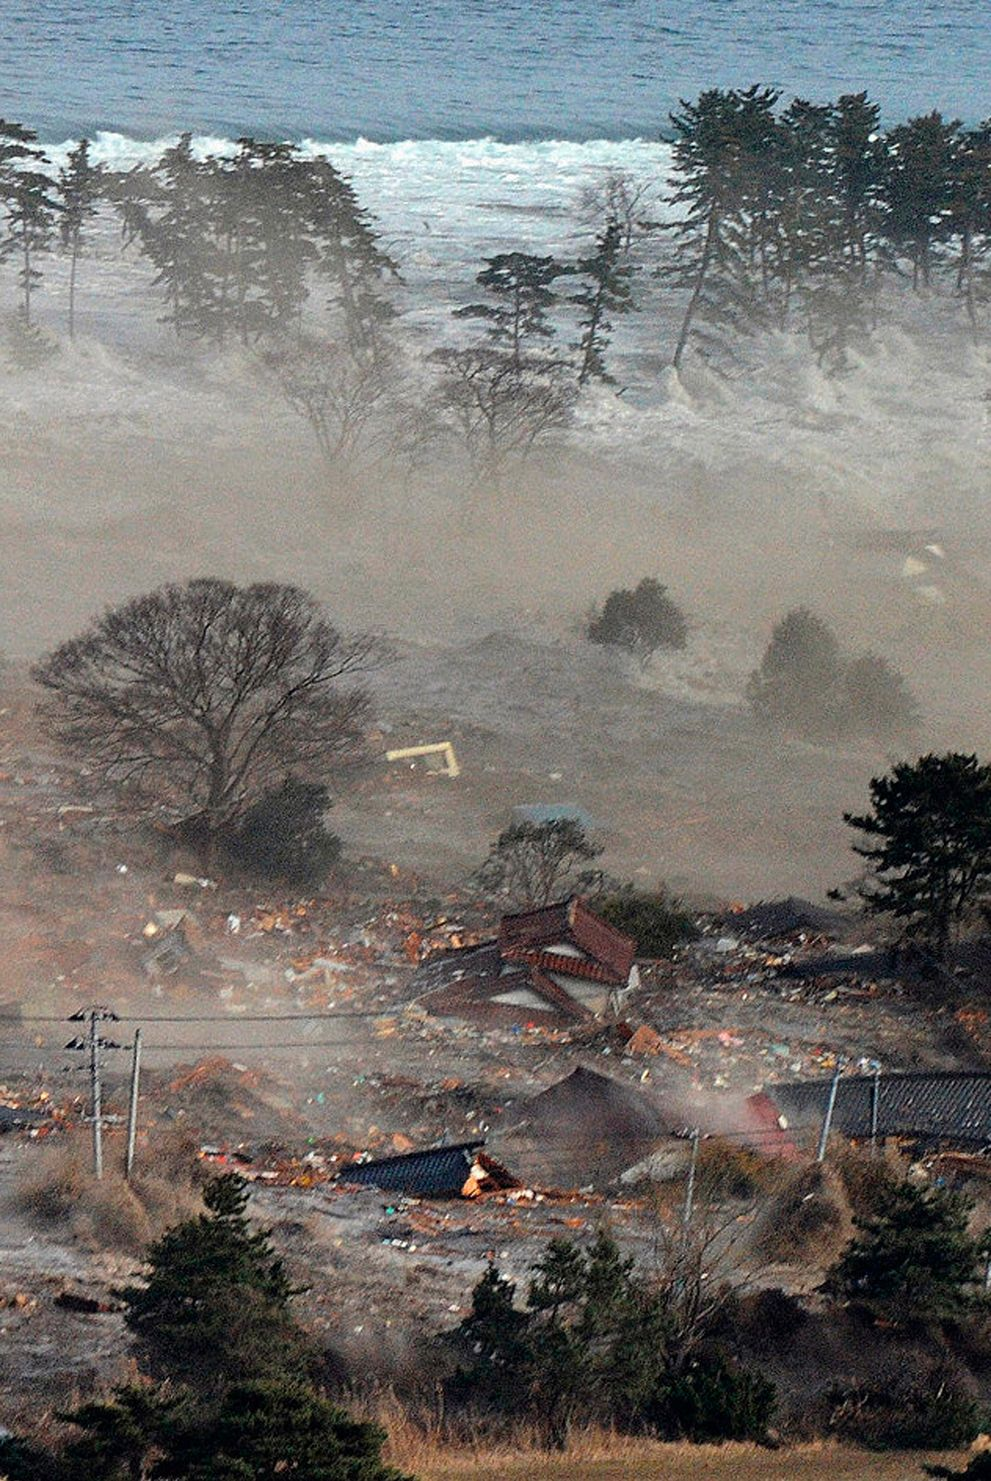 The earthquake and tsunami in Japan - so devastating and ...